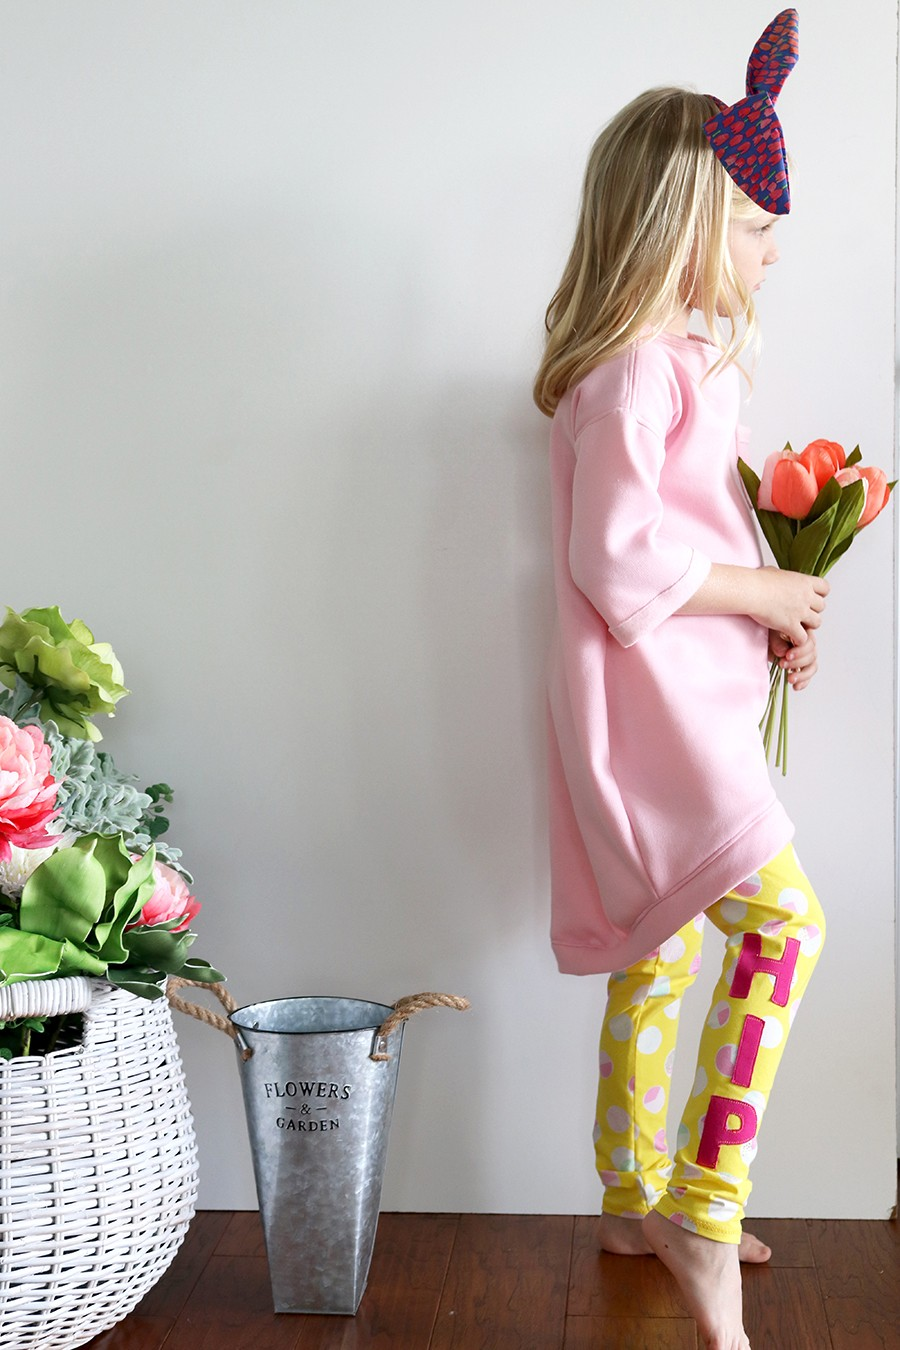 'Hip Hop' Leggings - free kids leggings pattern for Easter